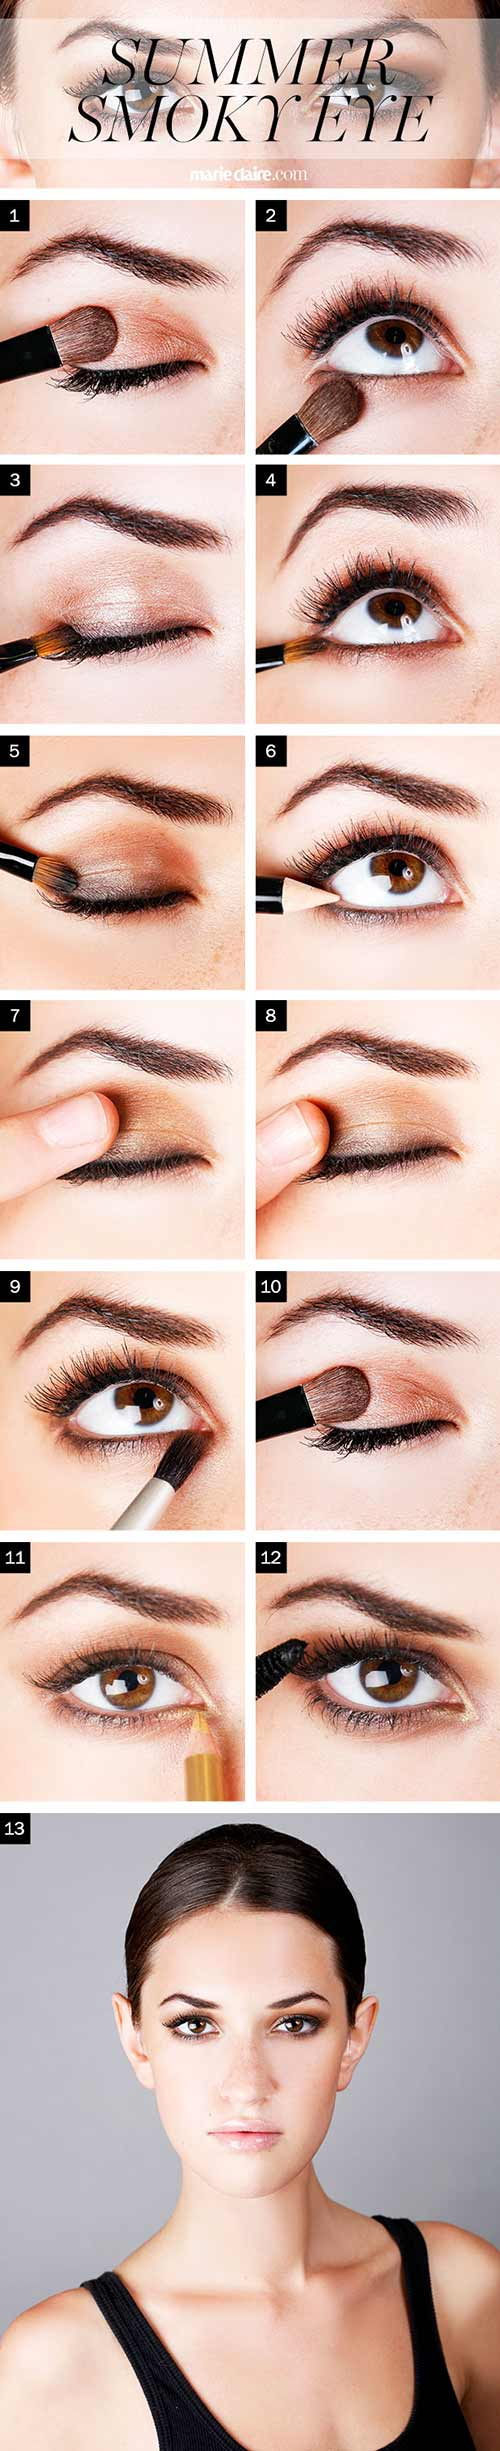 how to do smokey eye makeup? - top 10 tutorial pictures for 2019